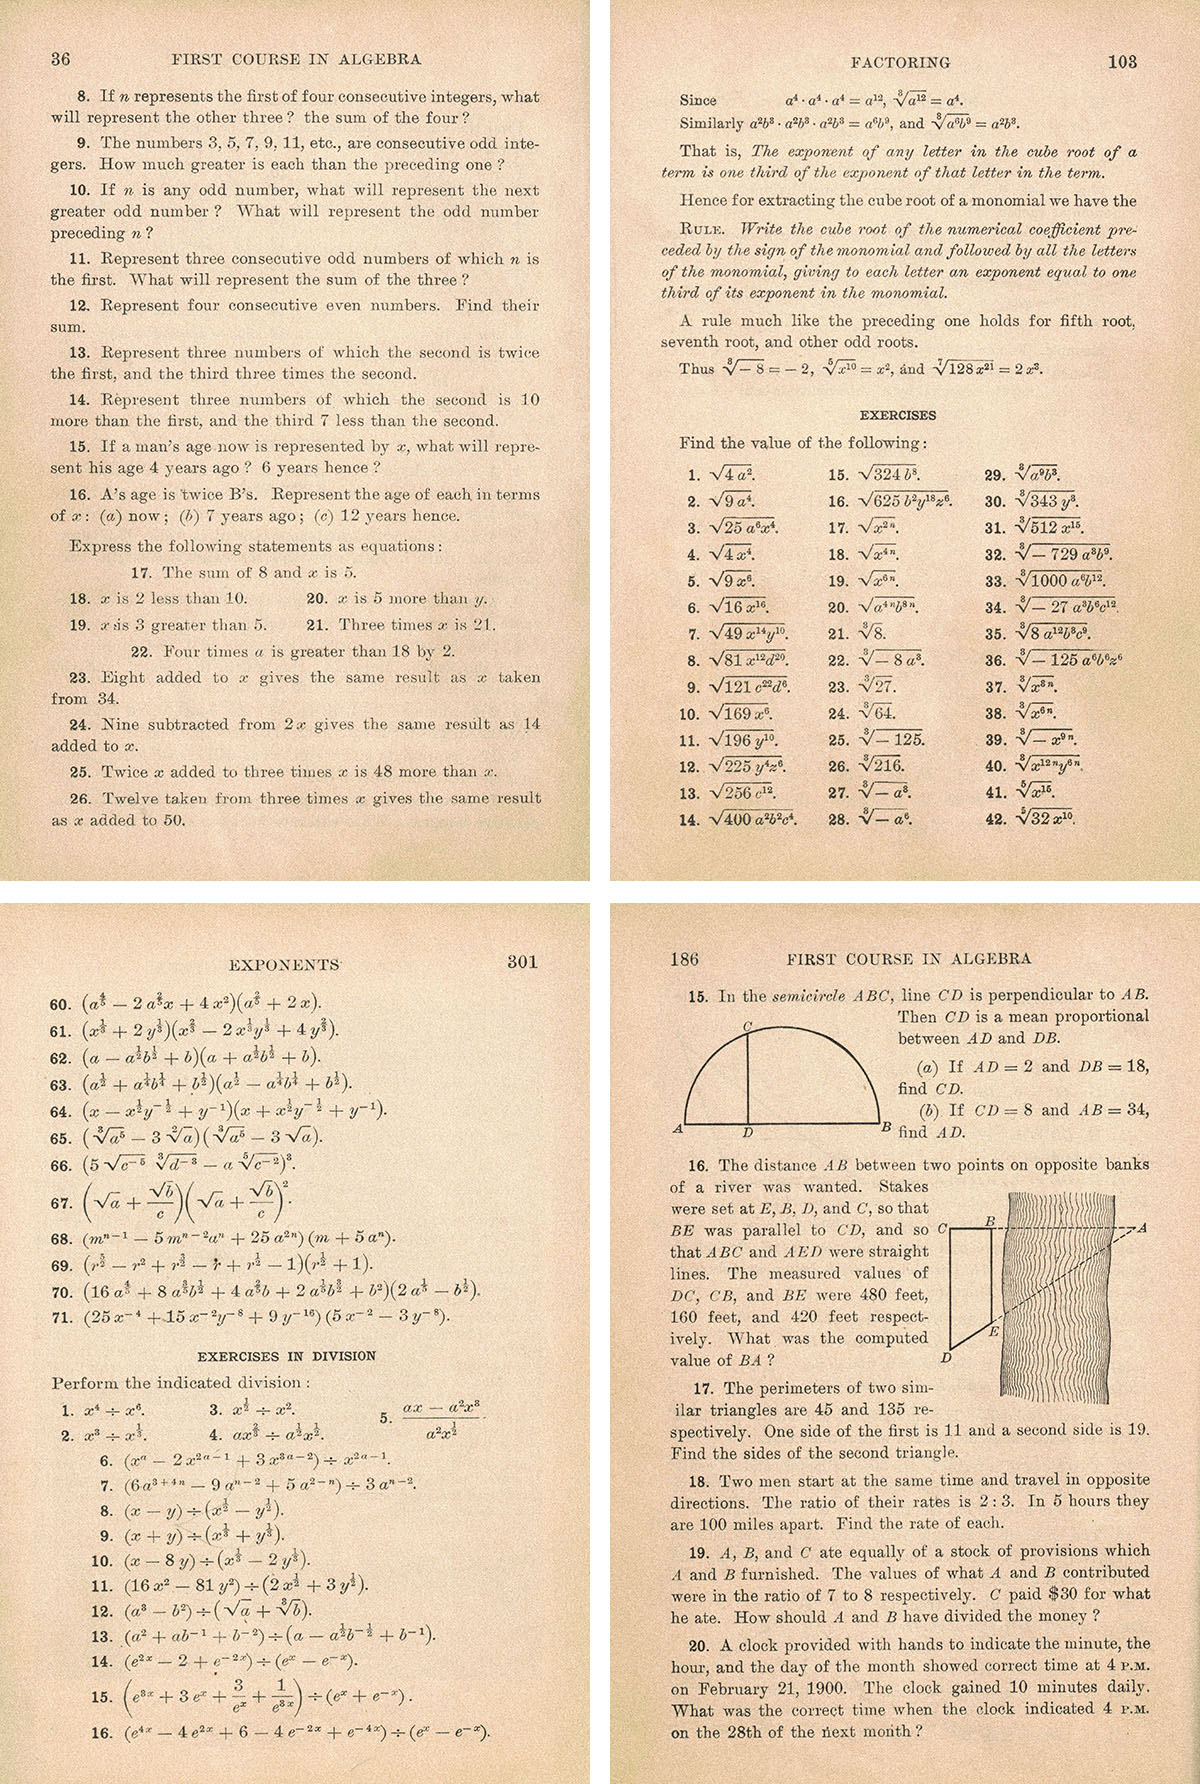 Vintage Algebra Textbook Full Pages Collage